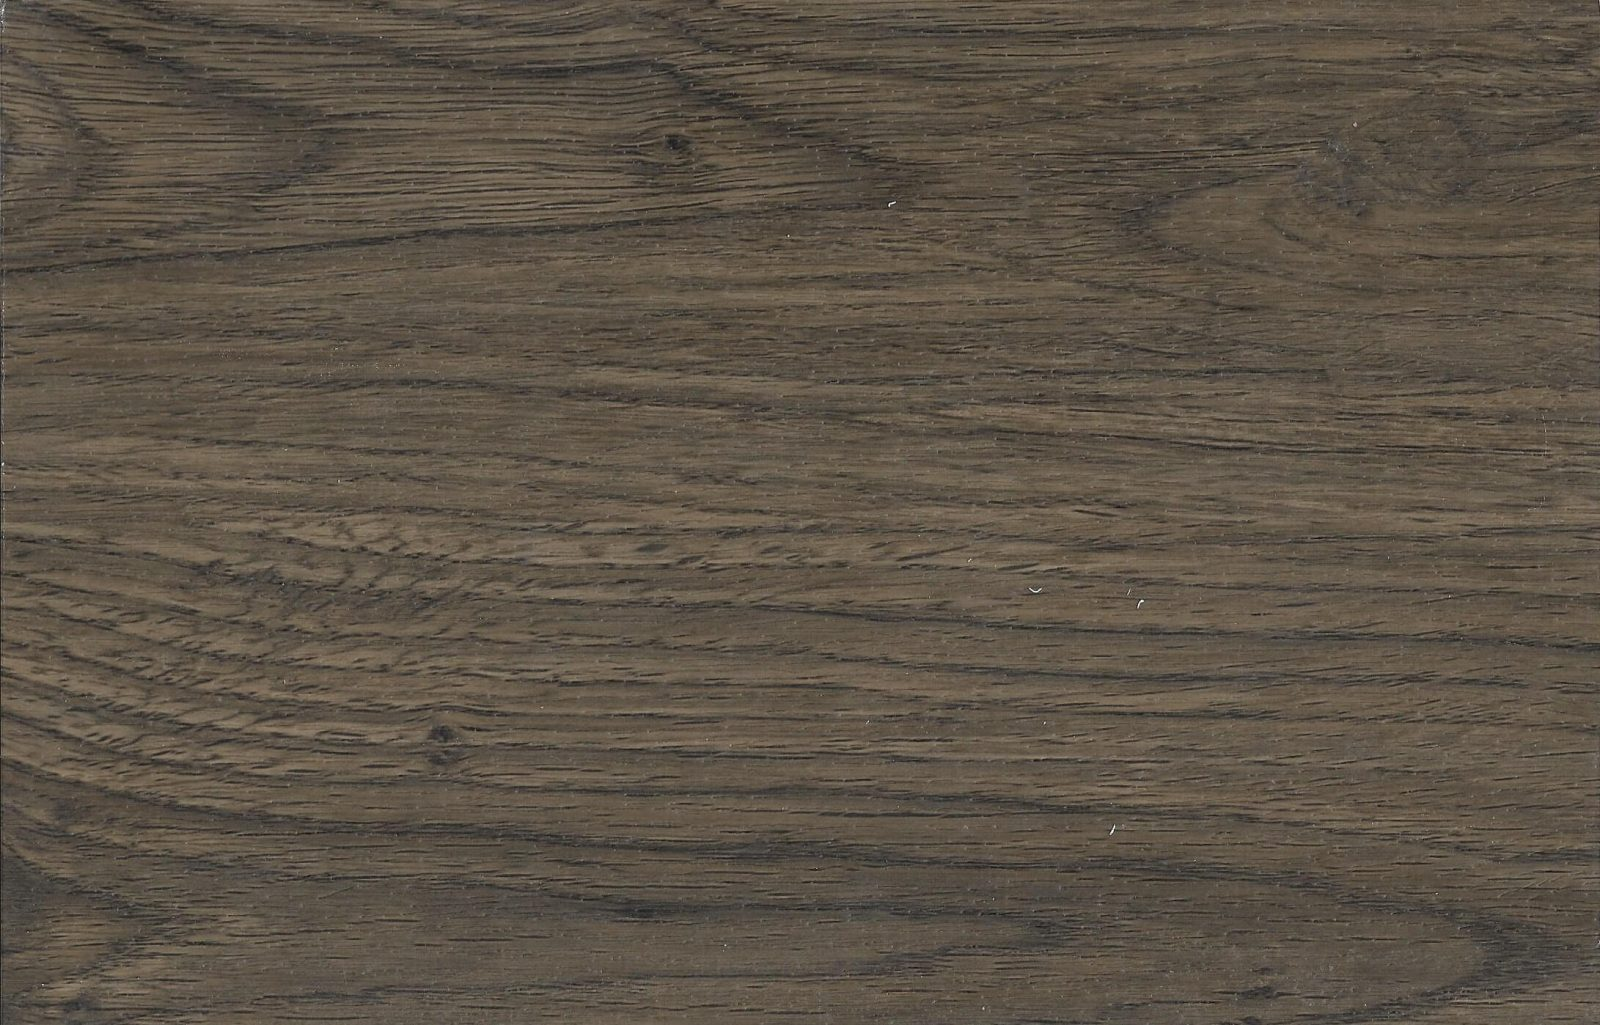 S504 Saddle Oak